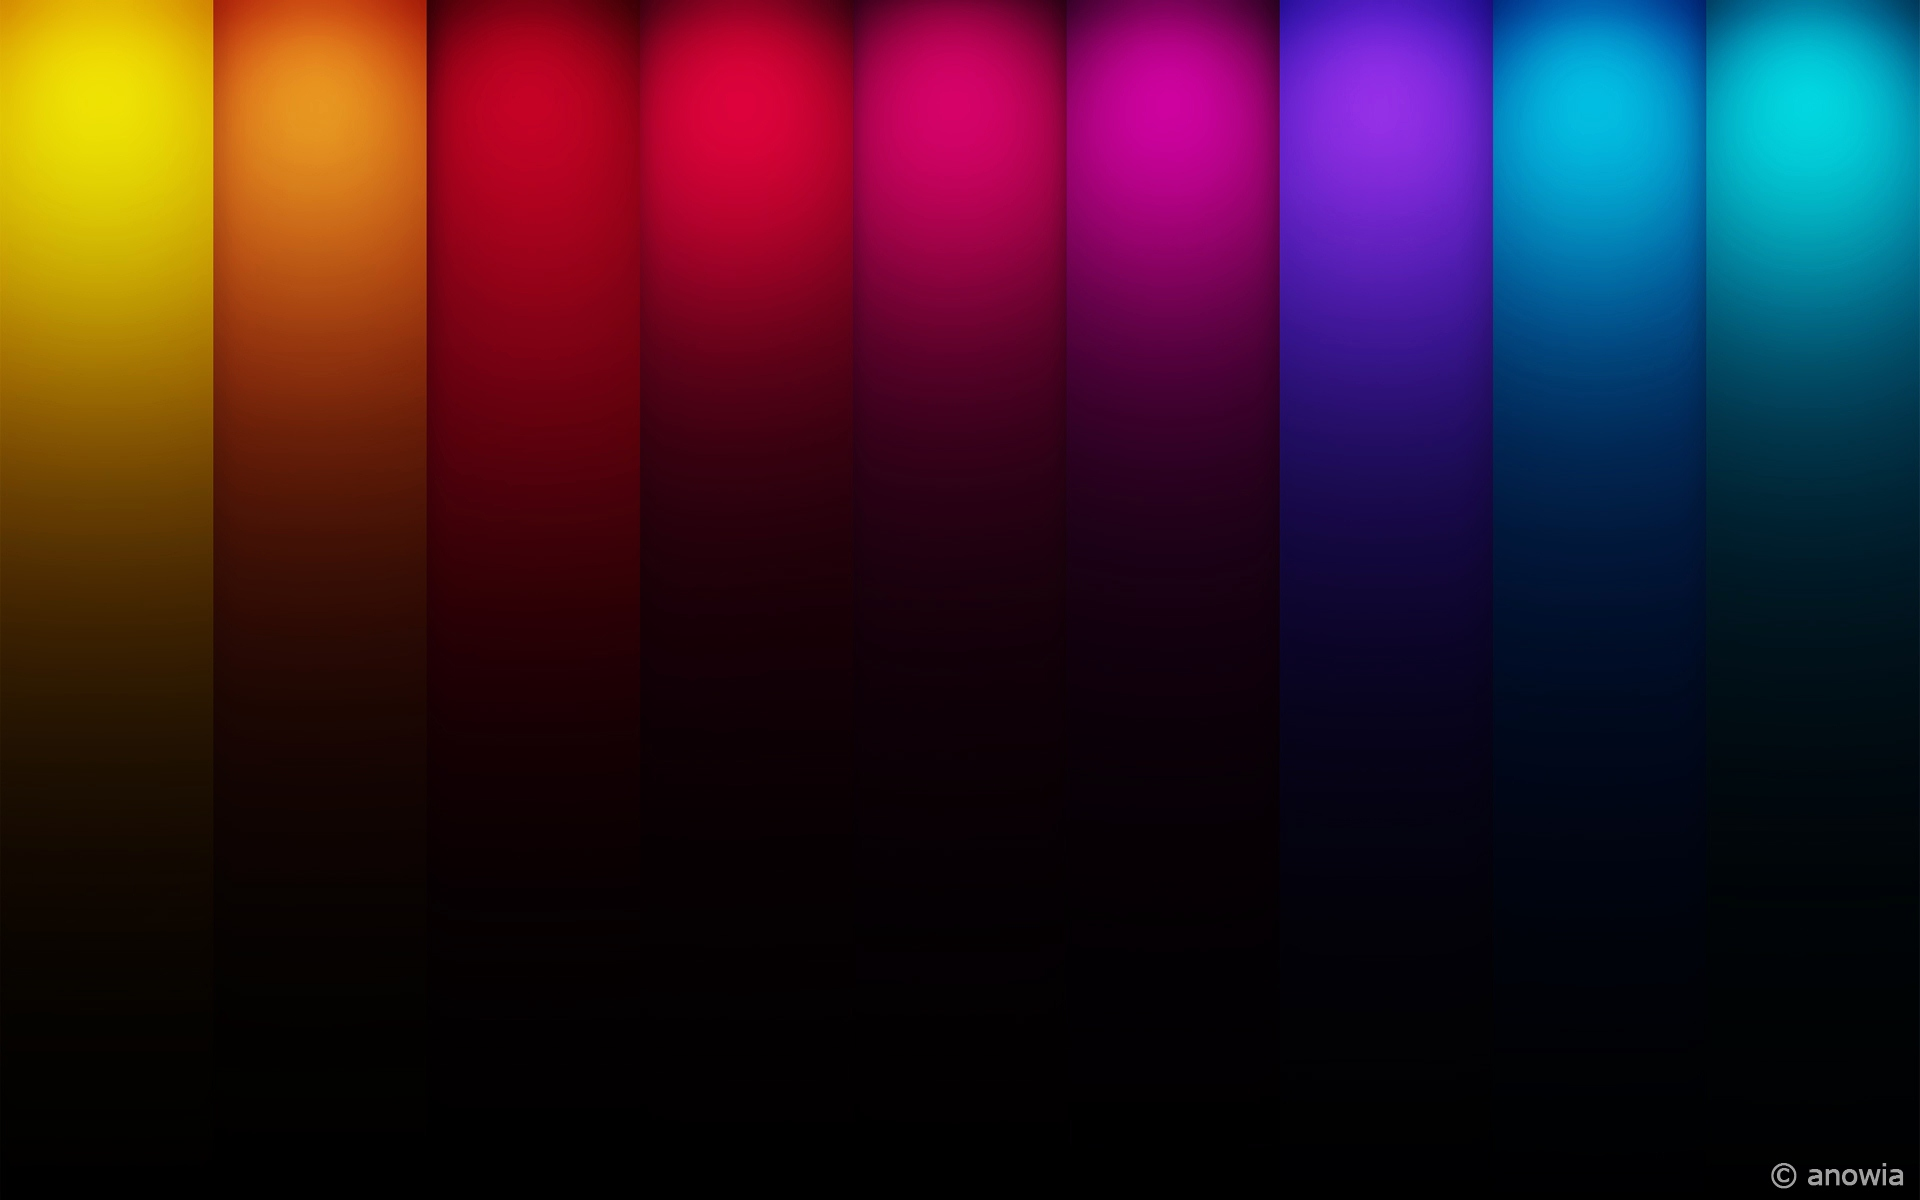 Colorful Courtains Wallpapers HD Wallpapers 1920x1200